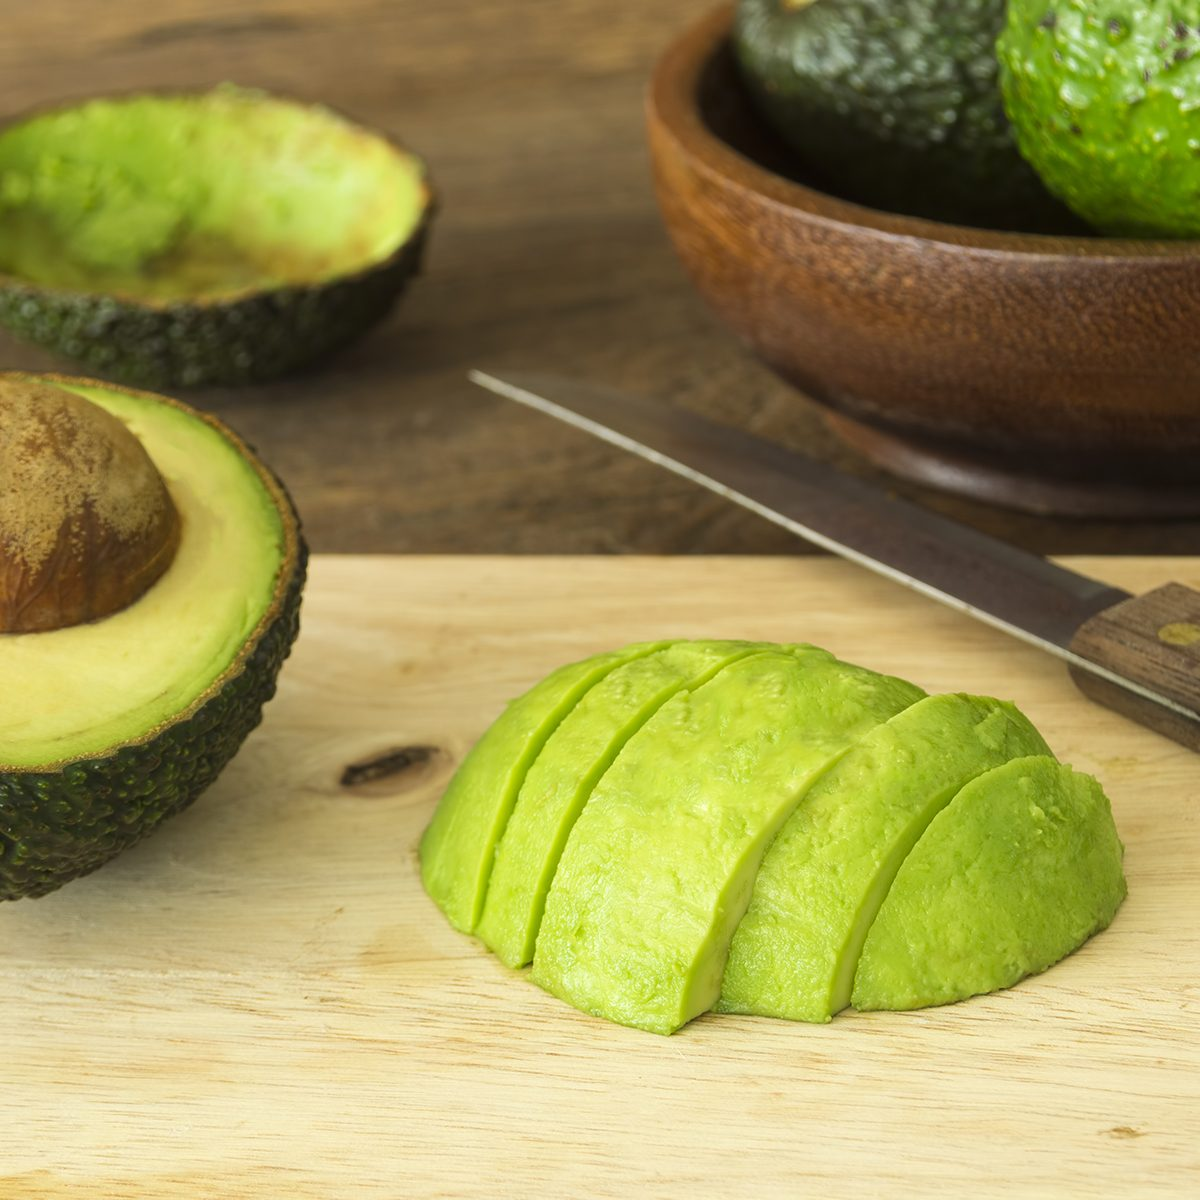 avocado and Sliced avocado slices on wooden board